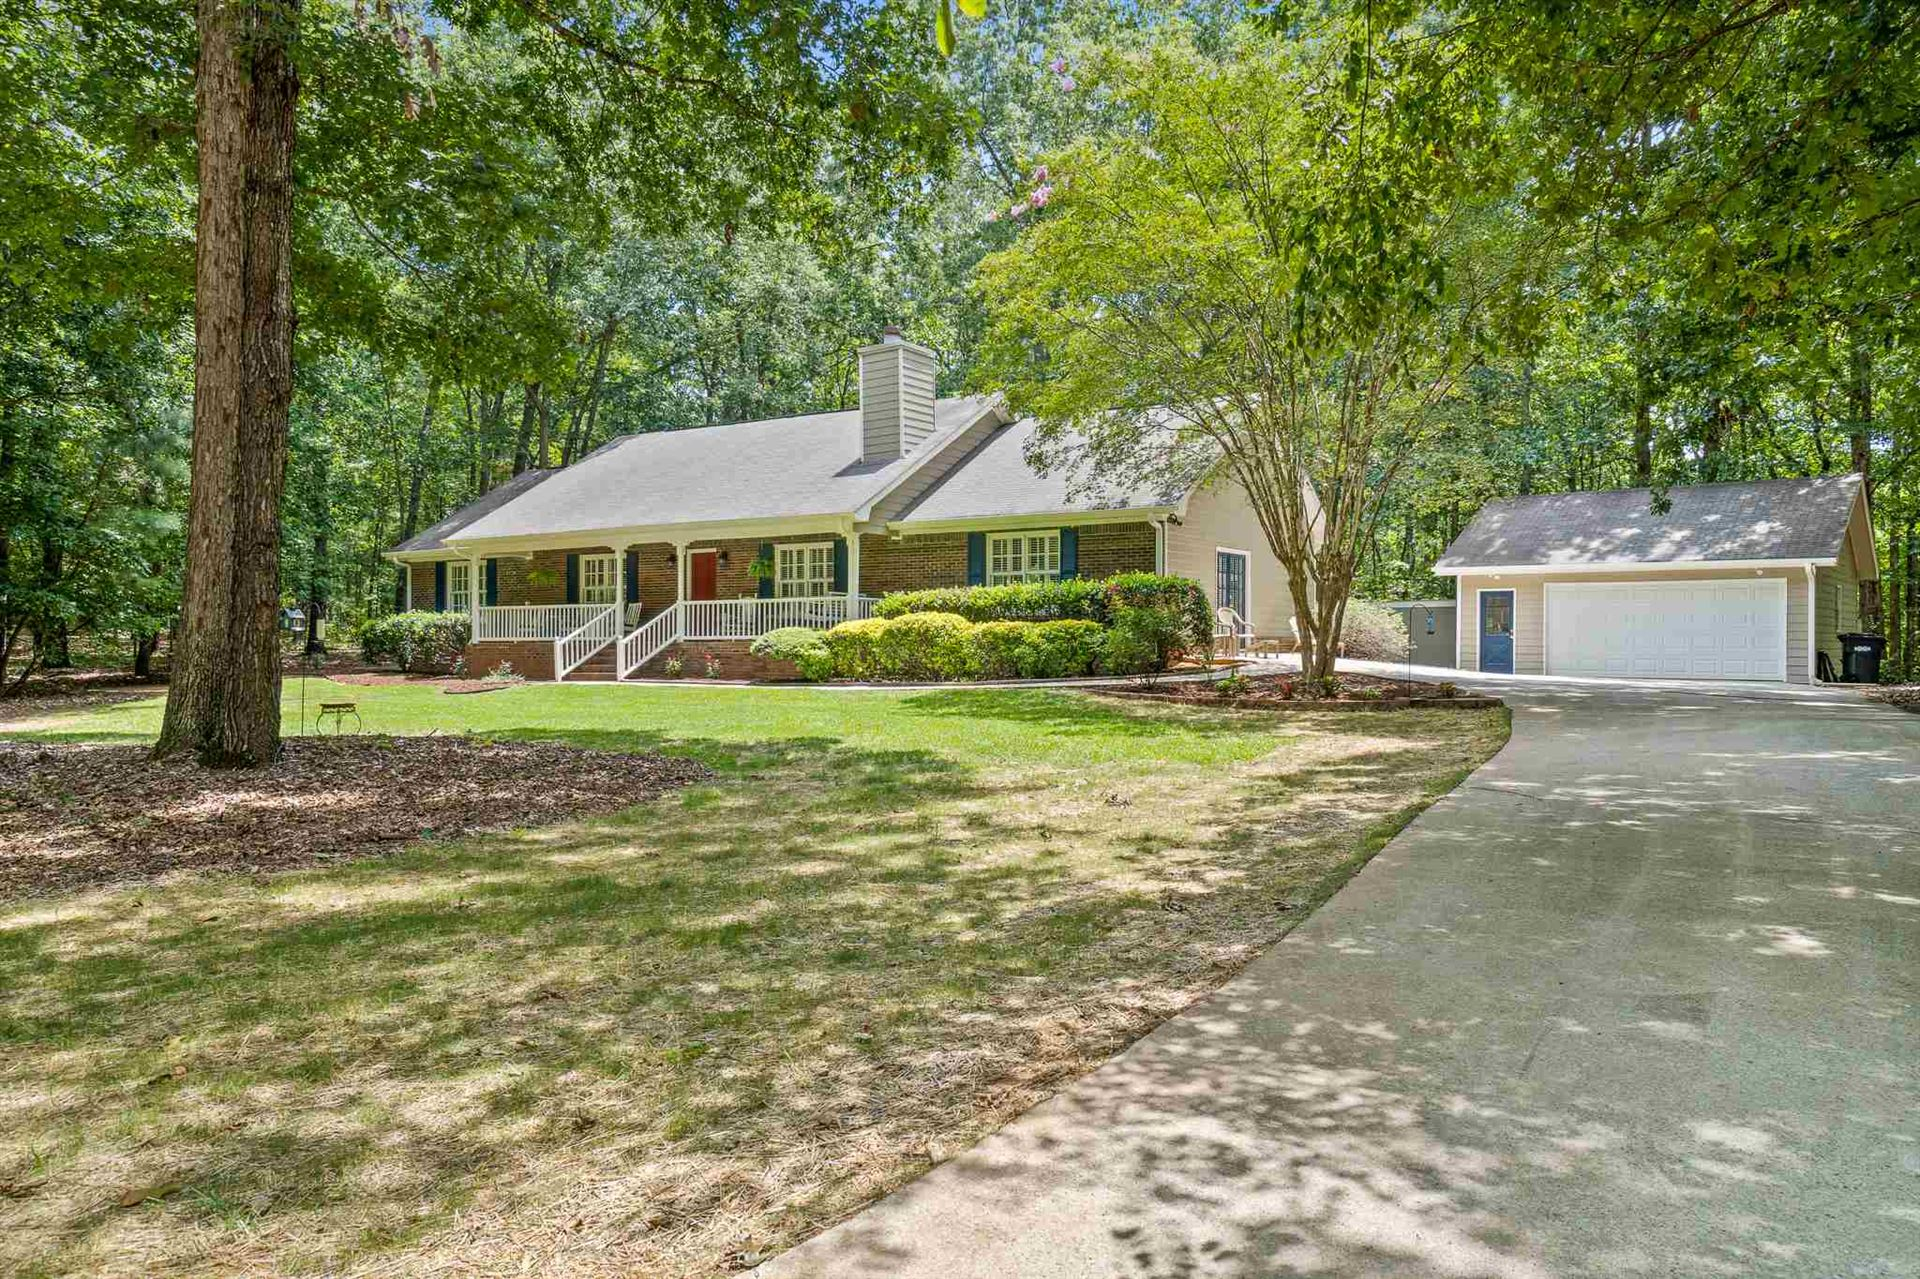 109 Bridget Dr, Hampton, GA 30228 - #: 8826482